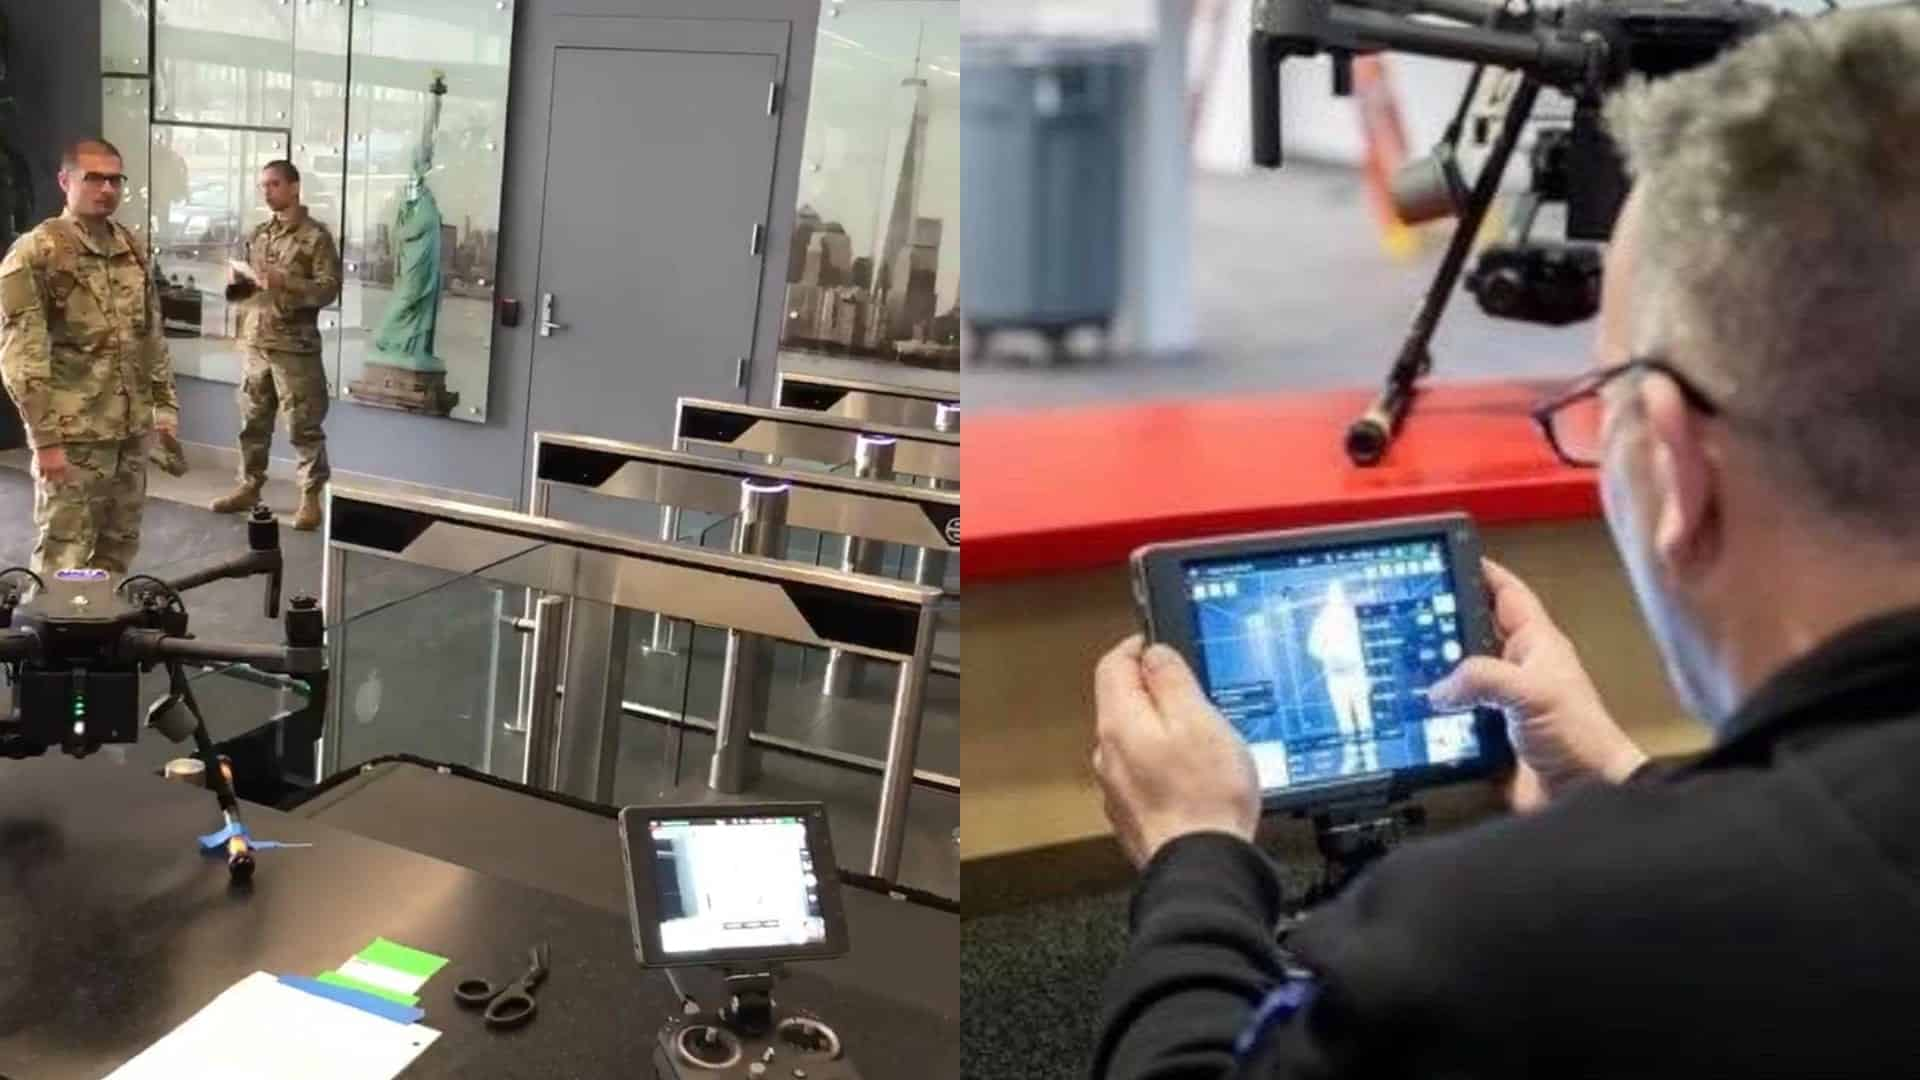 DJI Matrice 210 checks body temperature at hospital in Javits Convention Center in New York